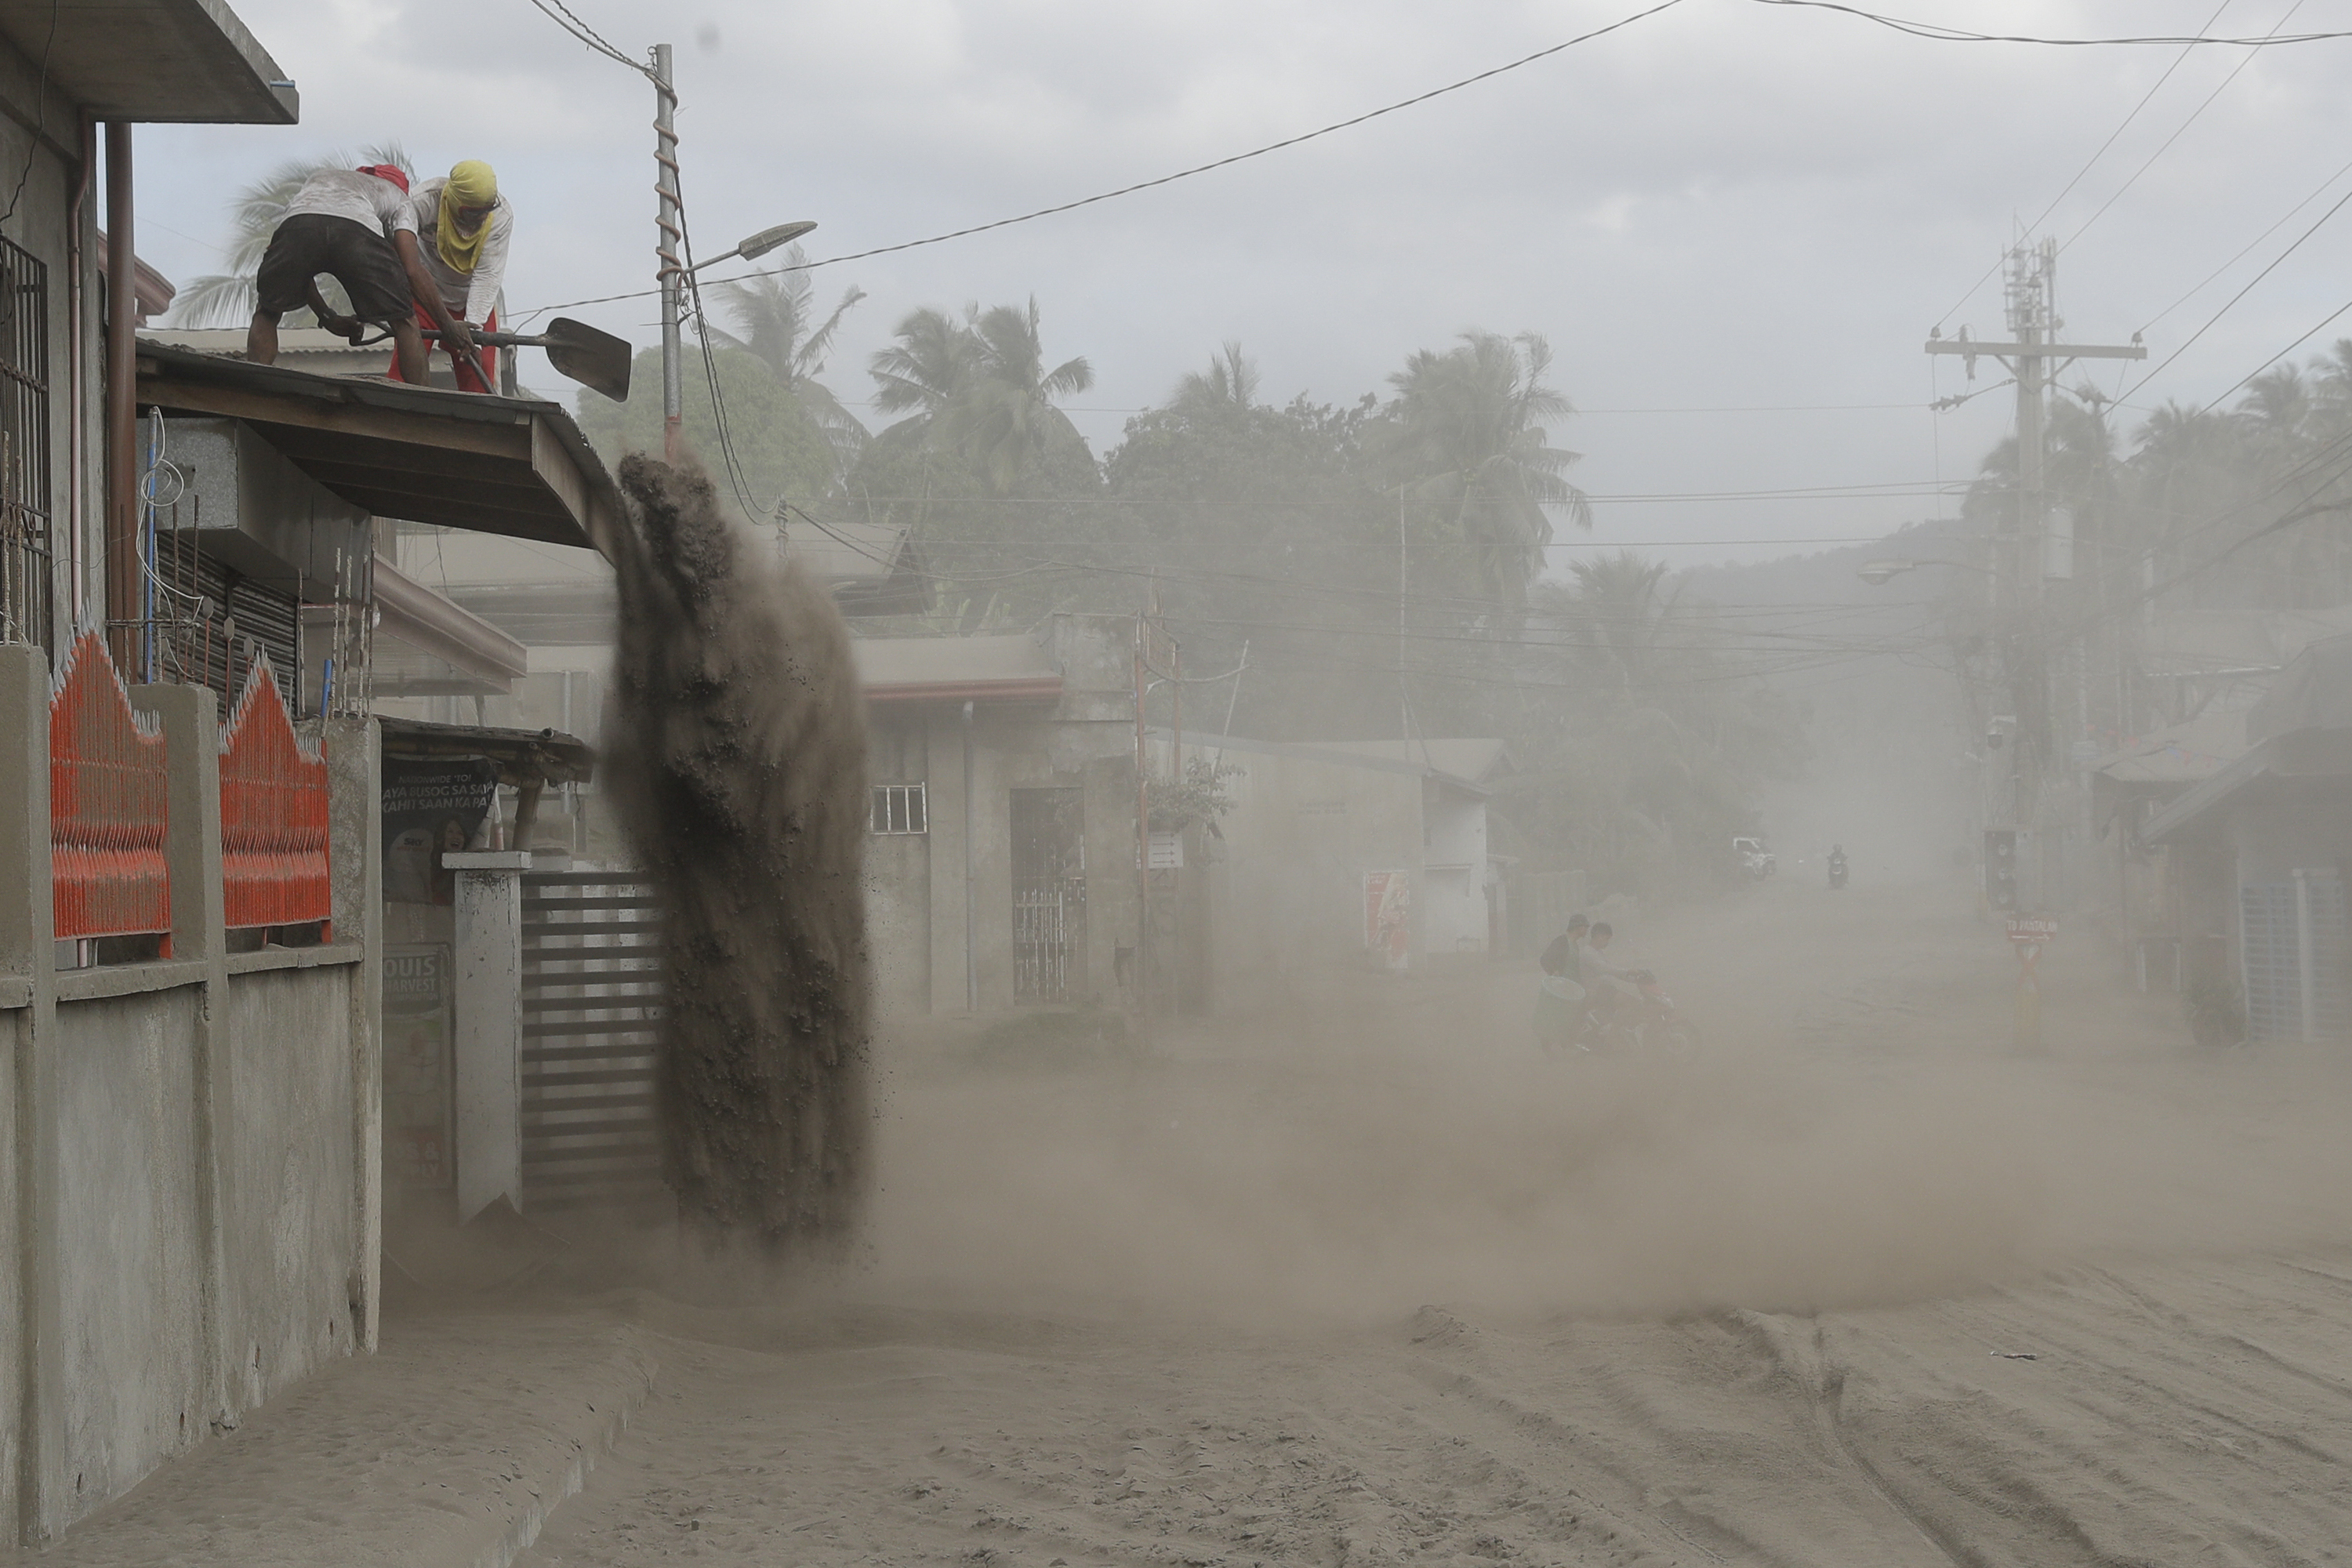 Philippine volcano simmers, officials brace for long crisis